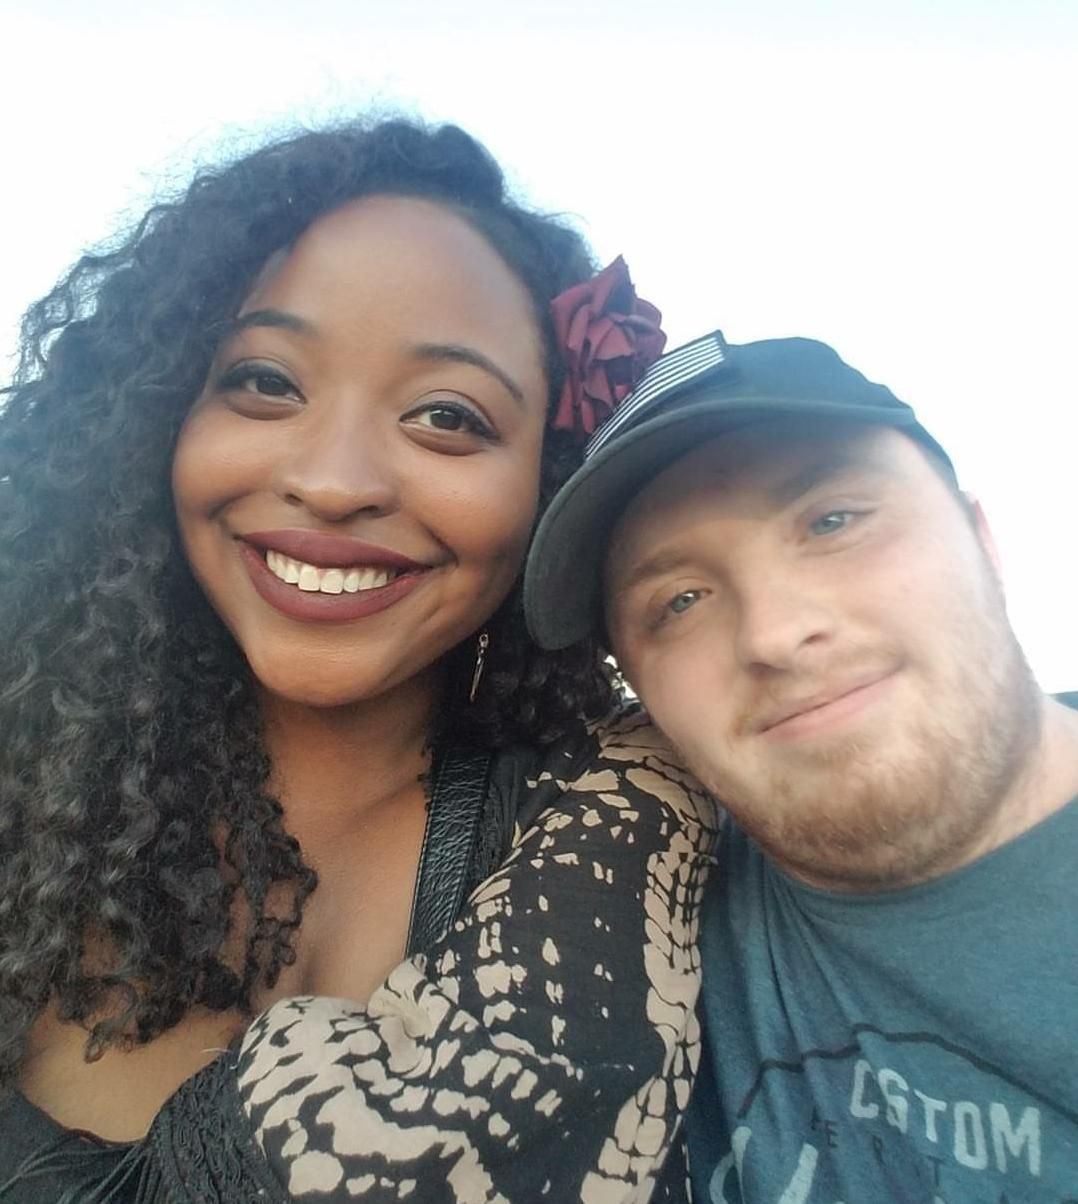 Whitney Mitchell and Garrett Foster, both 28, were attending an Austin protest Saturday where Foster was fatally shot, their mothers said. Mitchell, a quadruple amputee, was not injured.